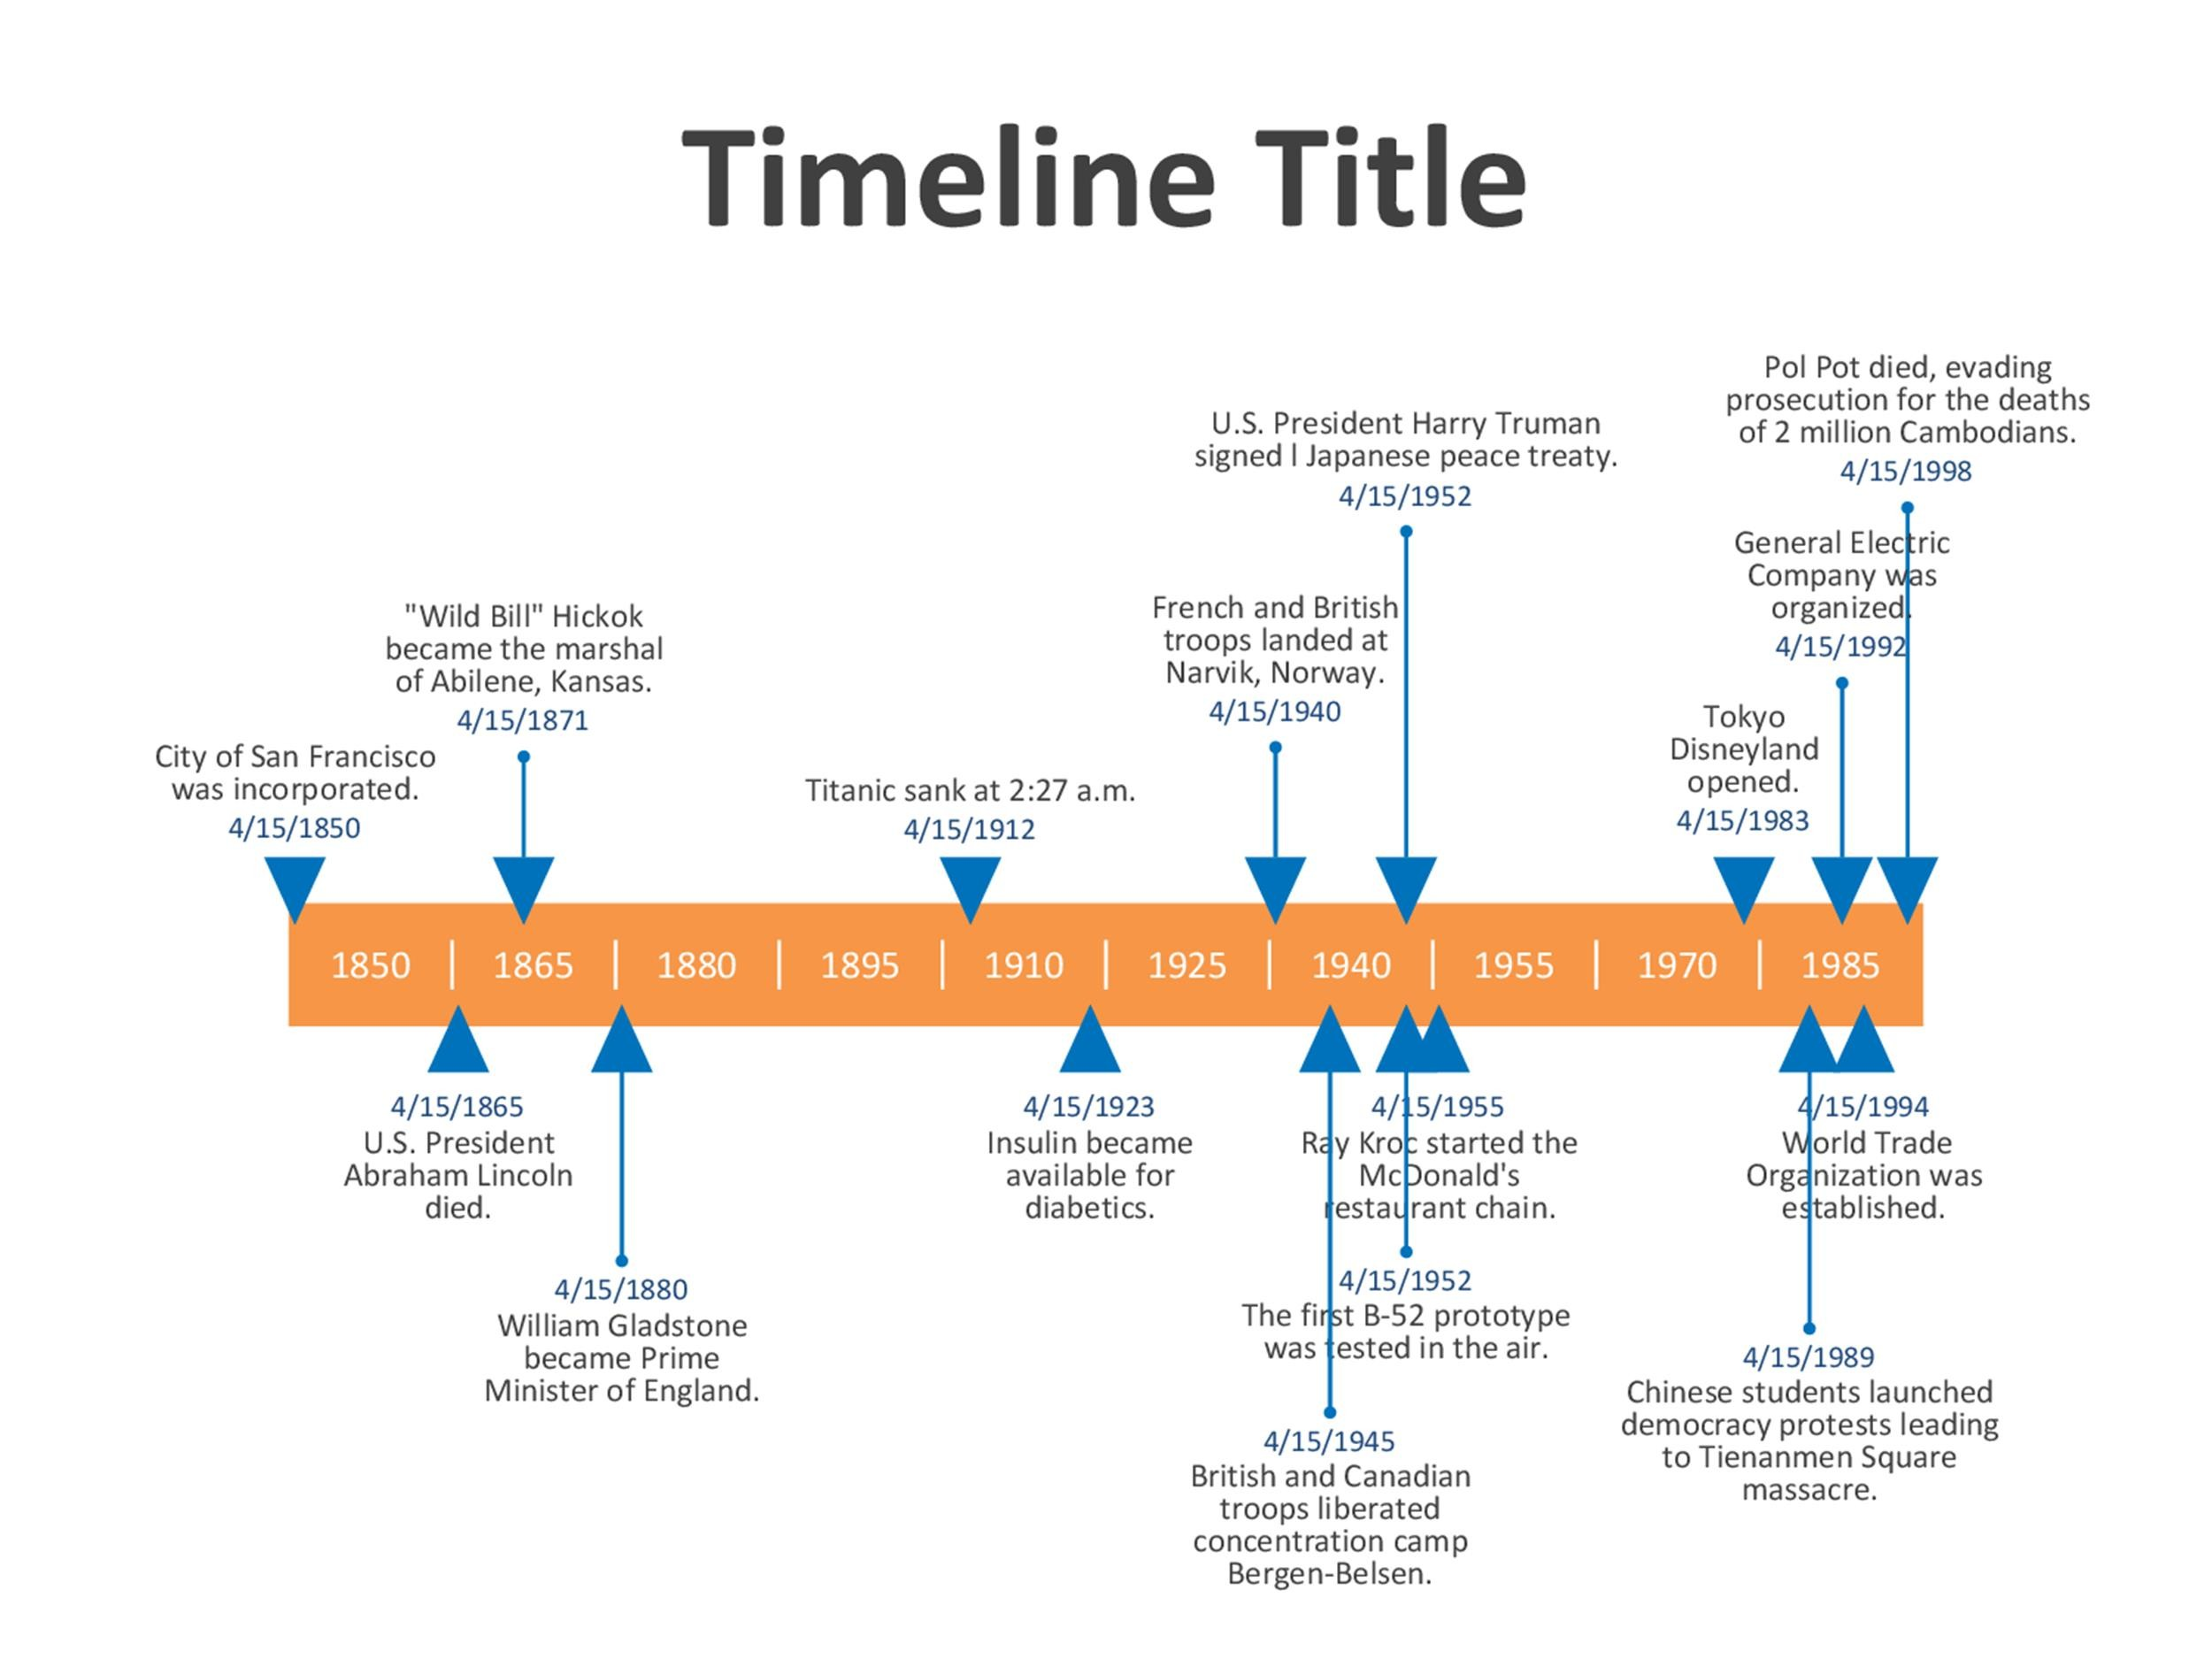 30+ Timeline Templates (Excel, Power Point, Word) - Template Lab